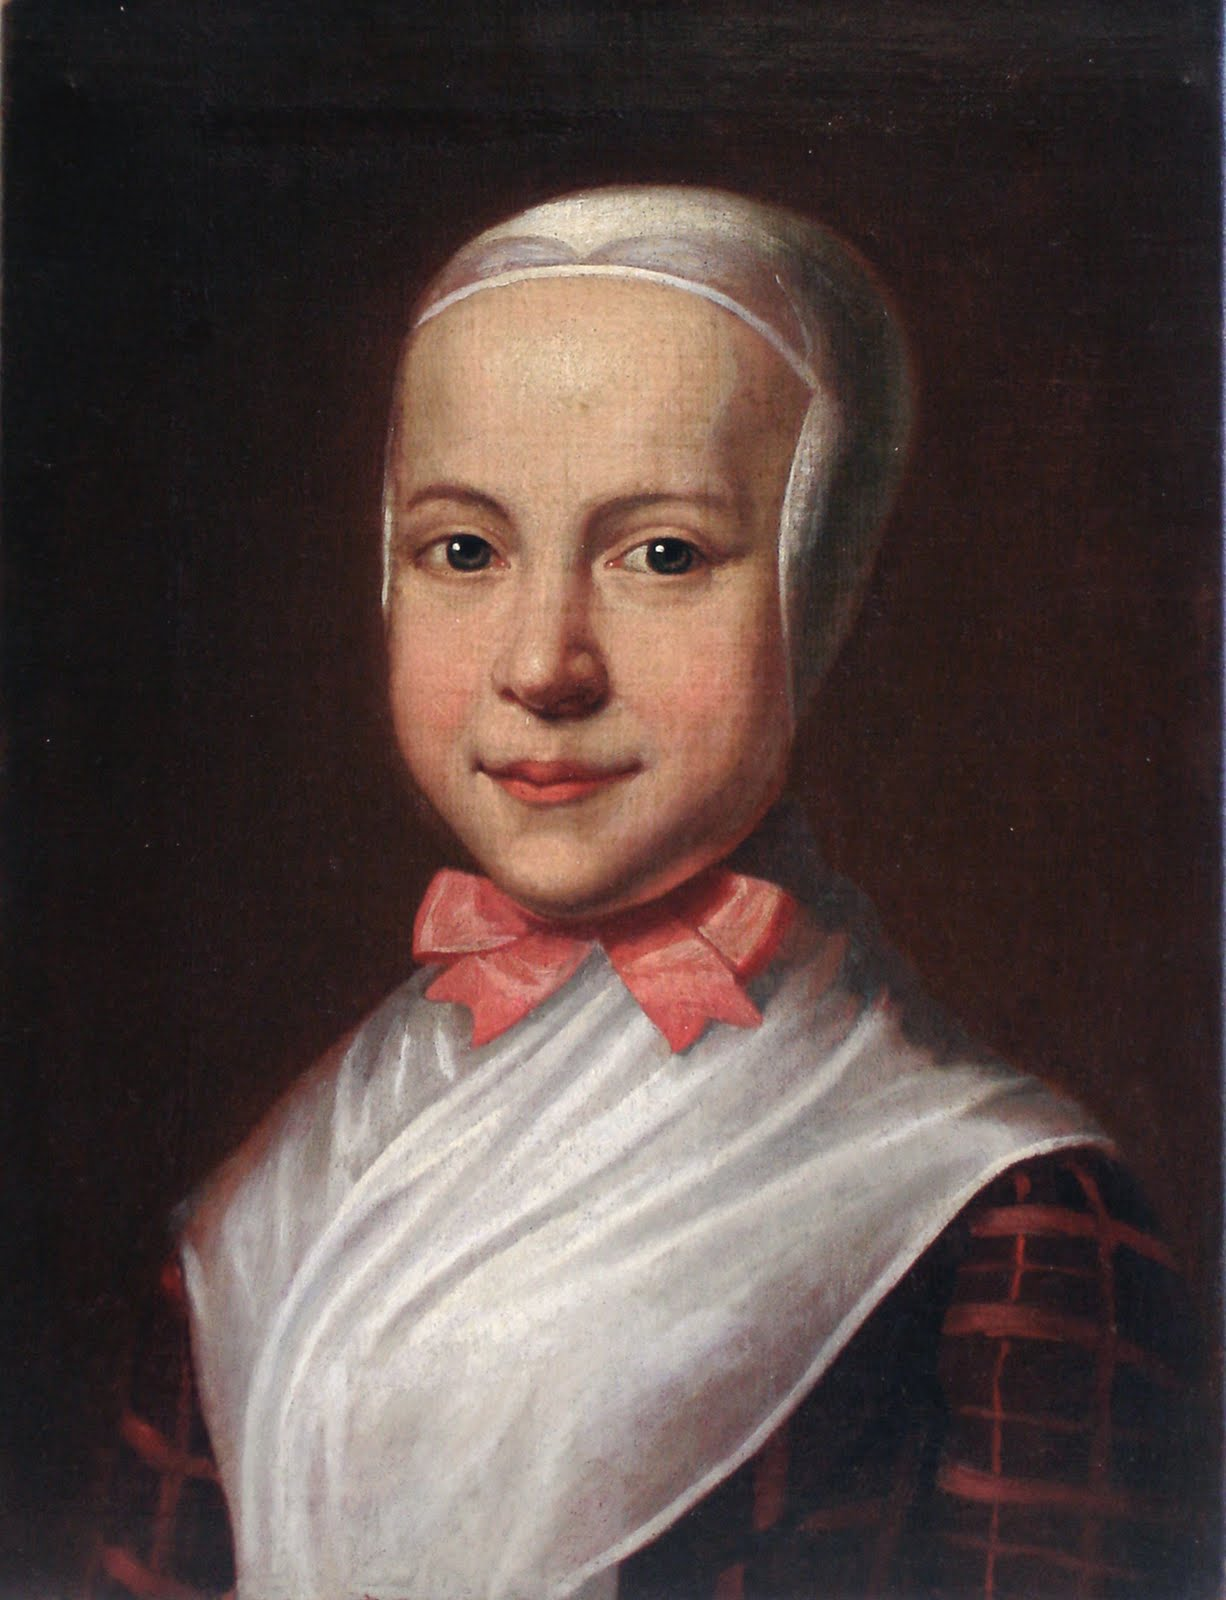 isis wardrobe a few 18th century paintings of interest young moravian girl by johann valentin haidt painted before 1780